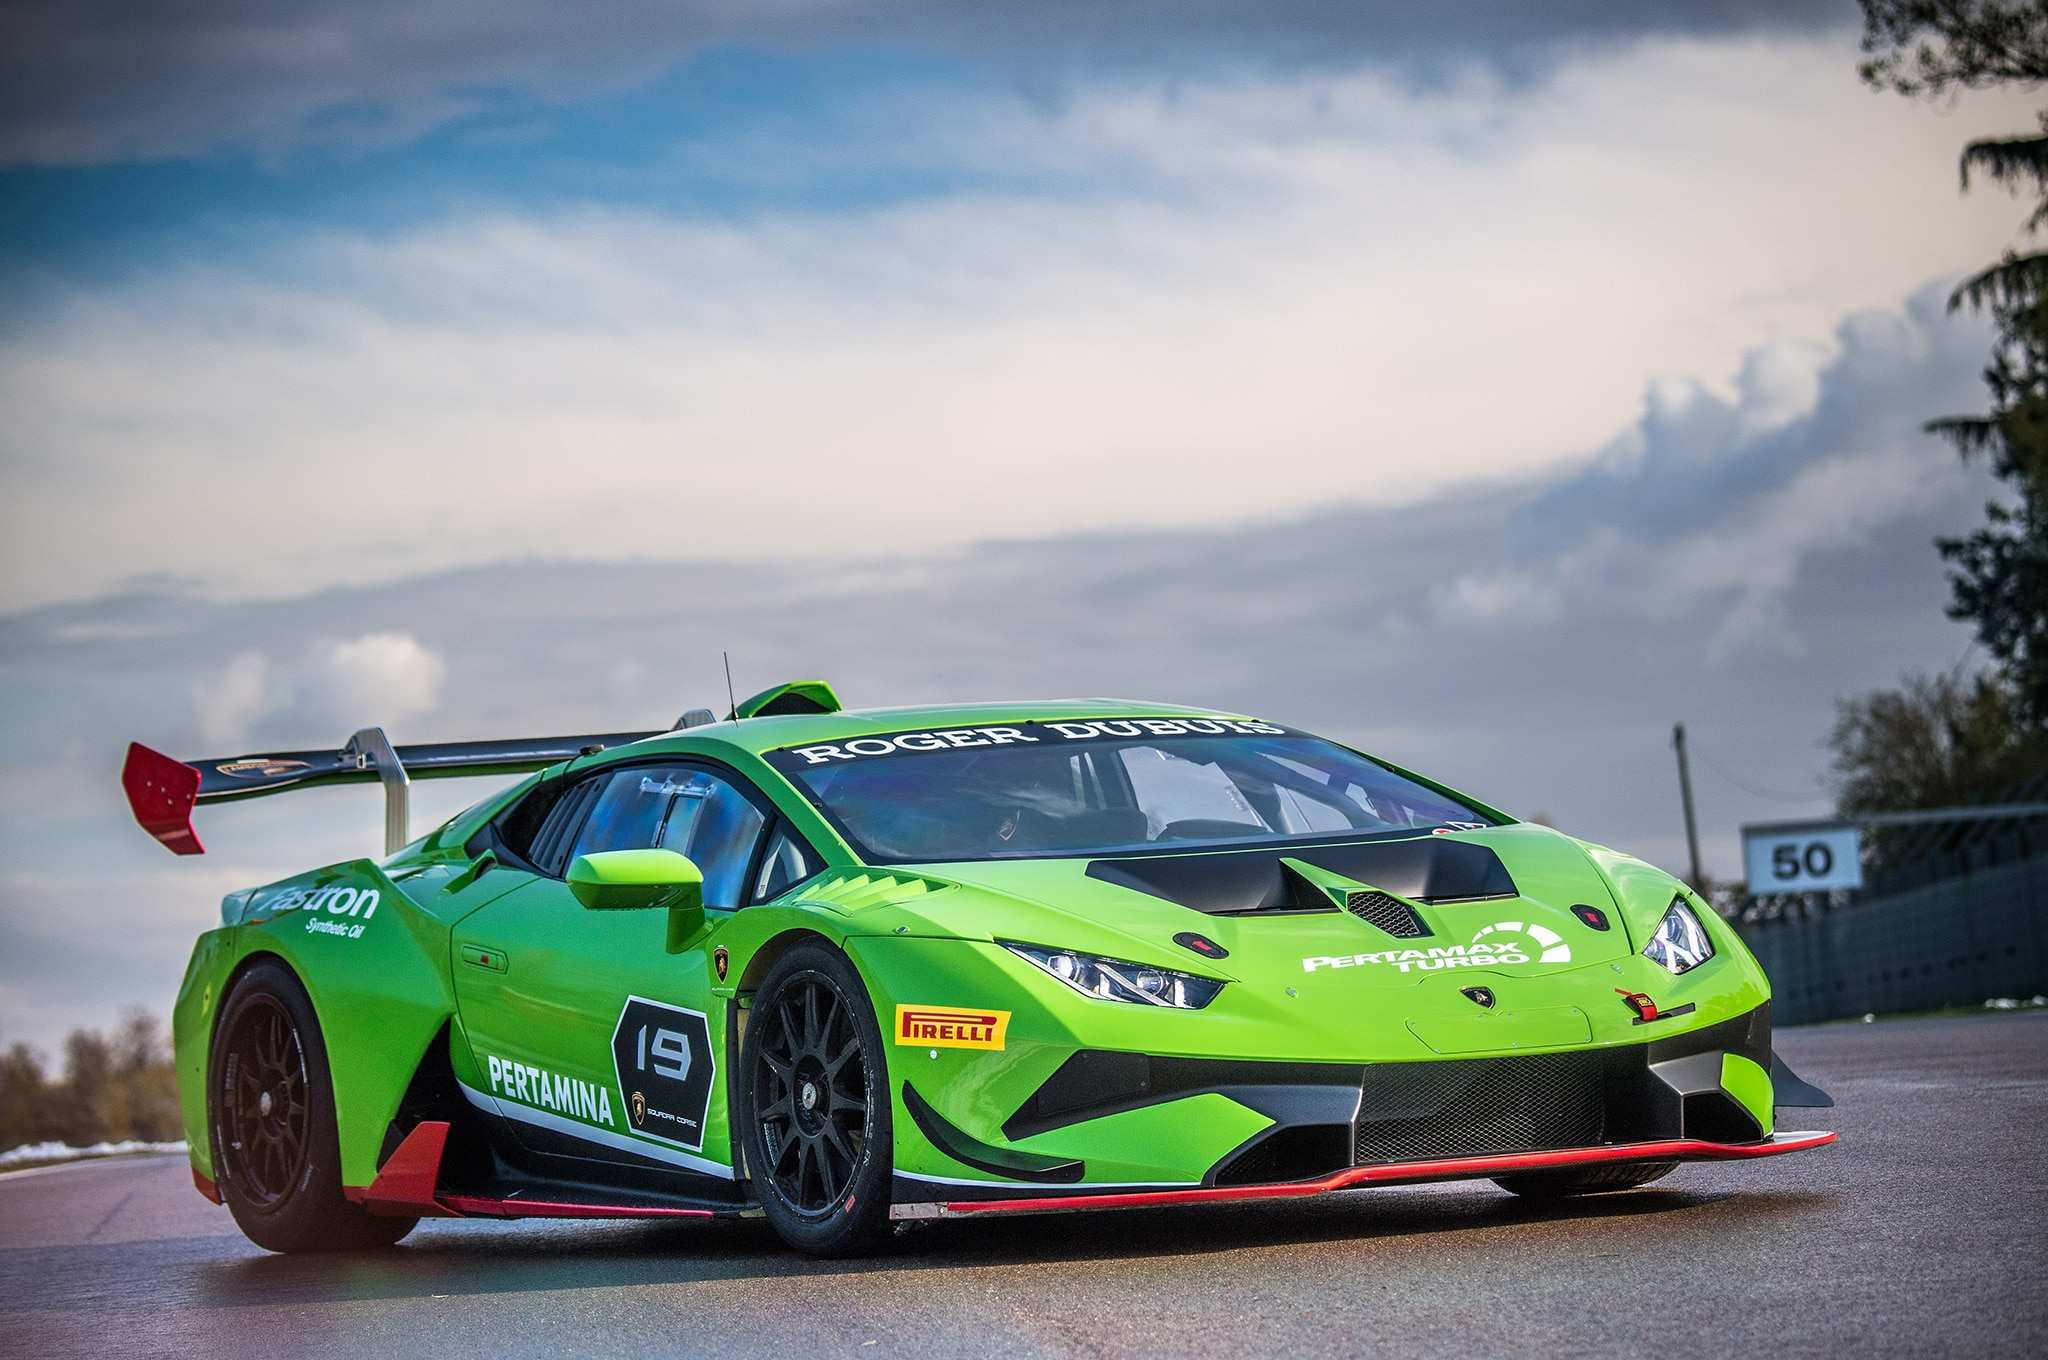 28 New 2019 Lamborghini Huracan Gt3 Evo New Review